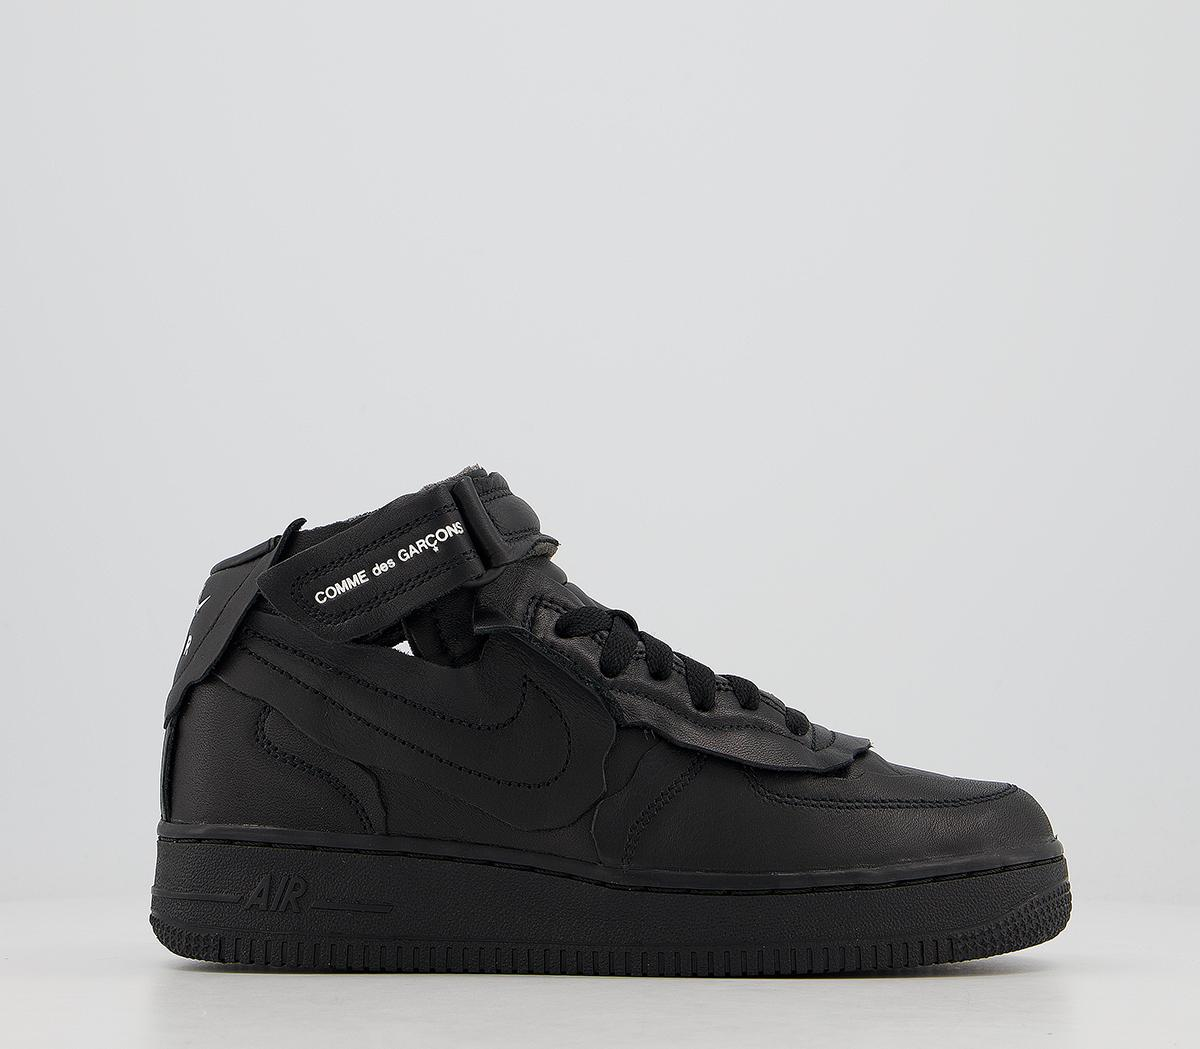 Cdg Nike Cut Off Air Force 1 Trainers